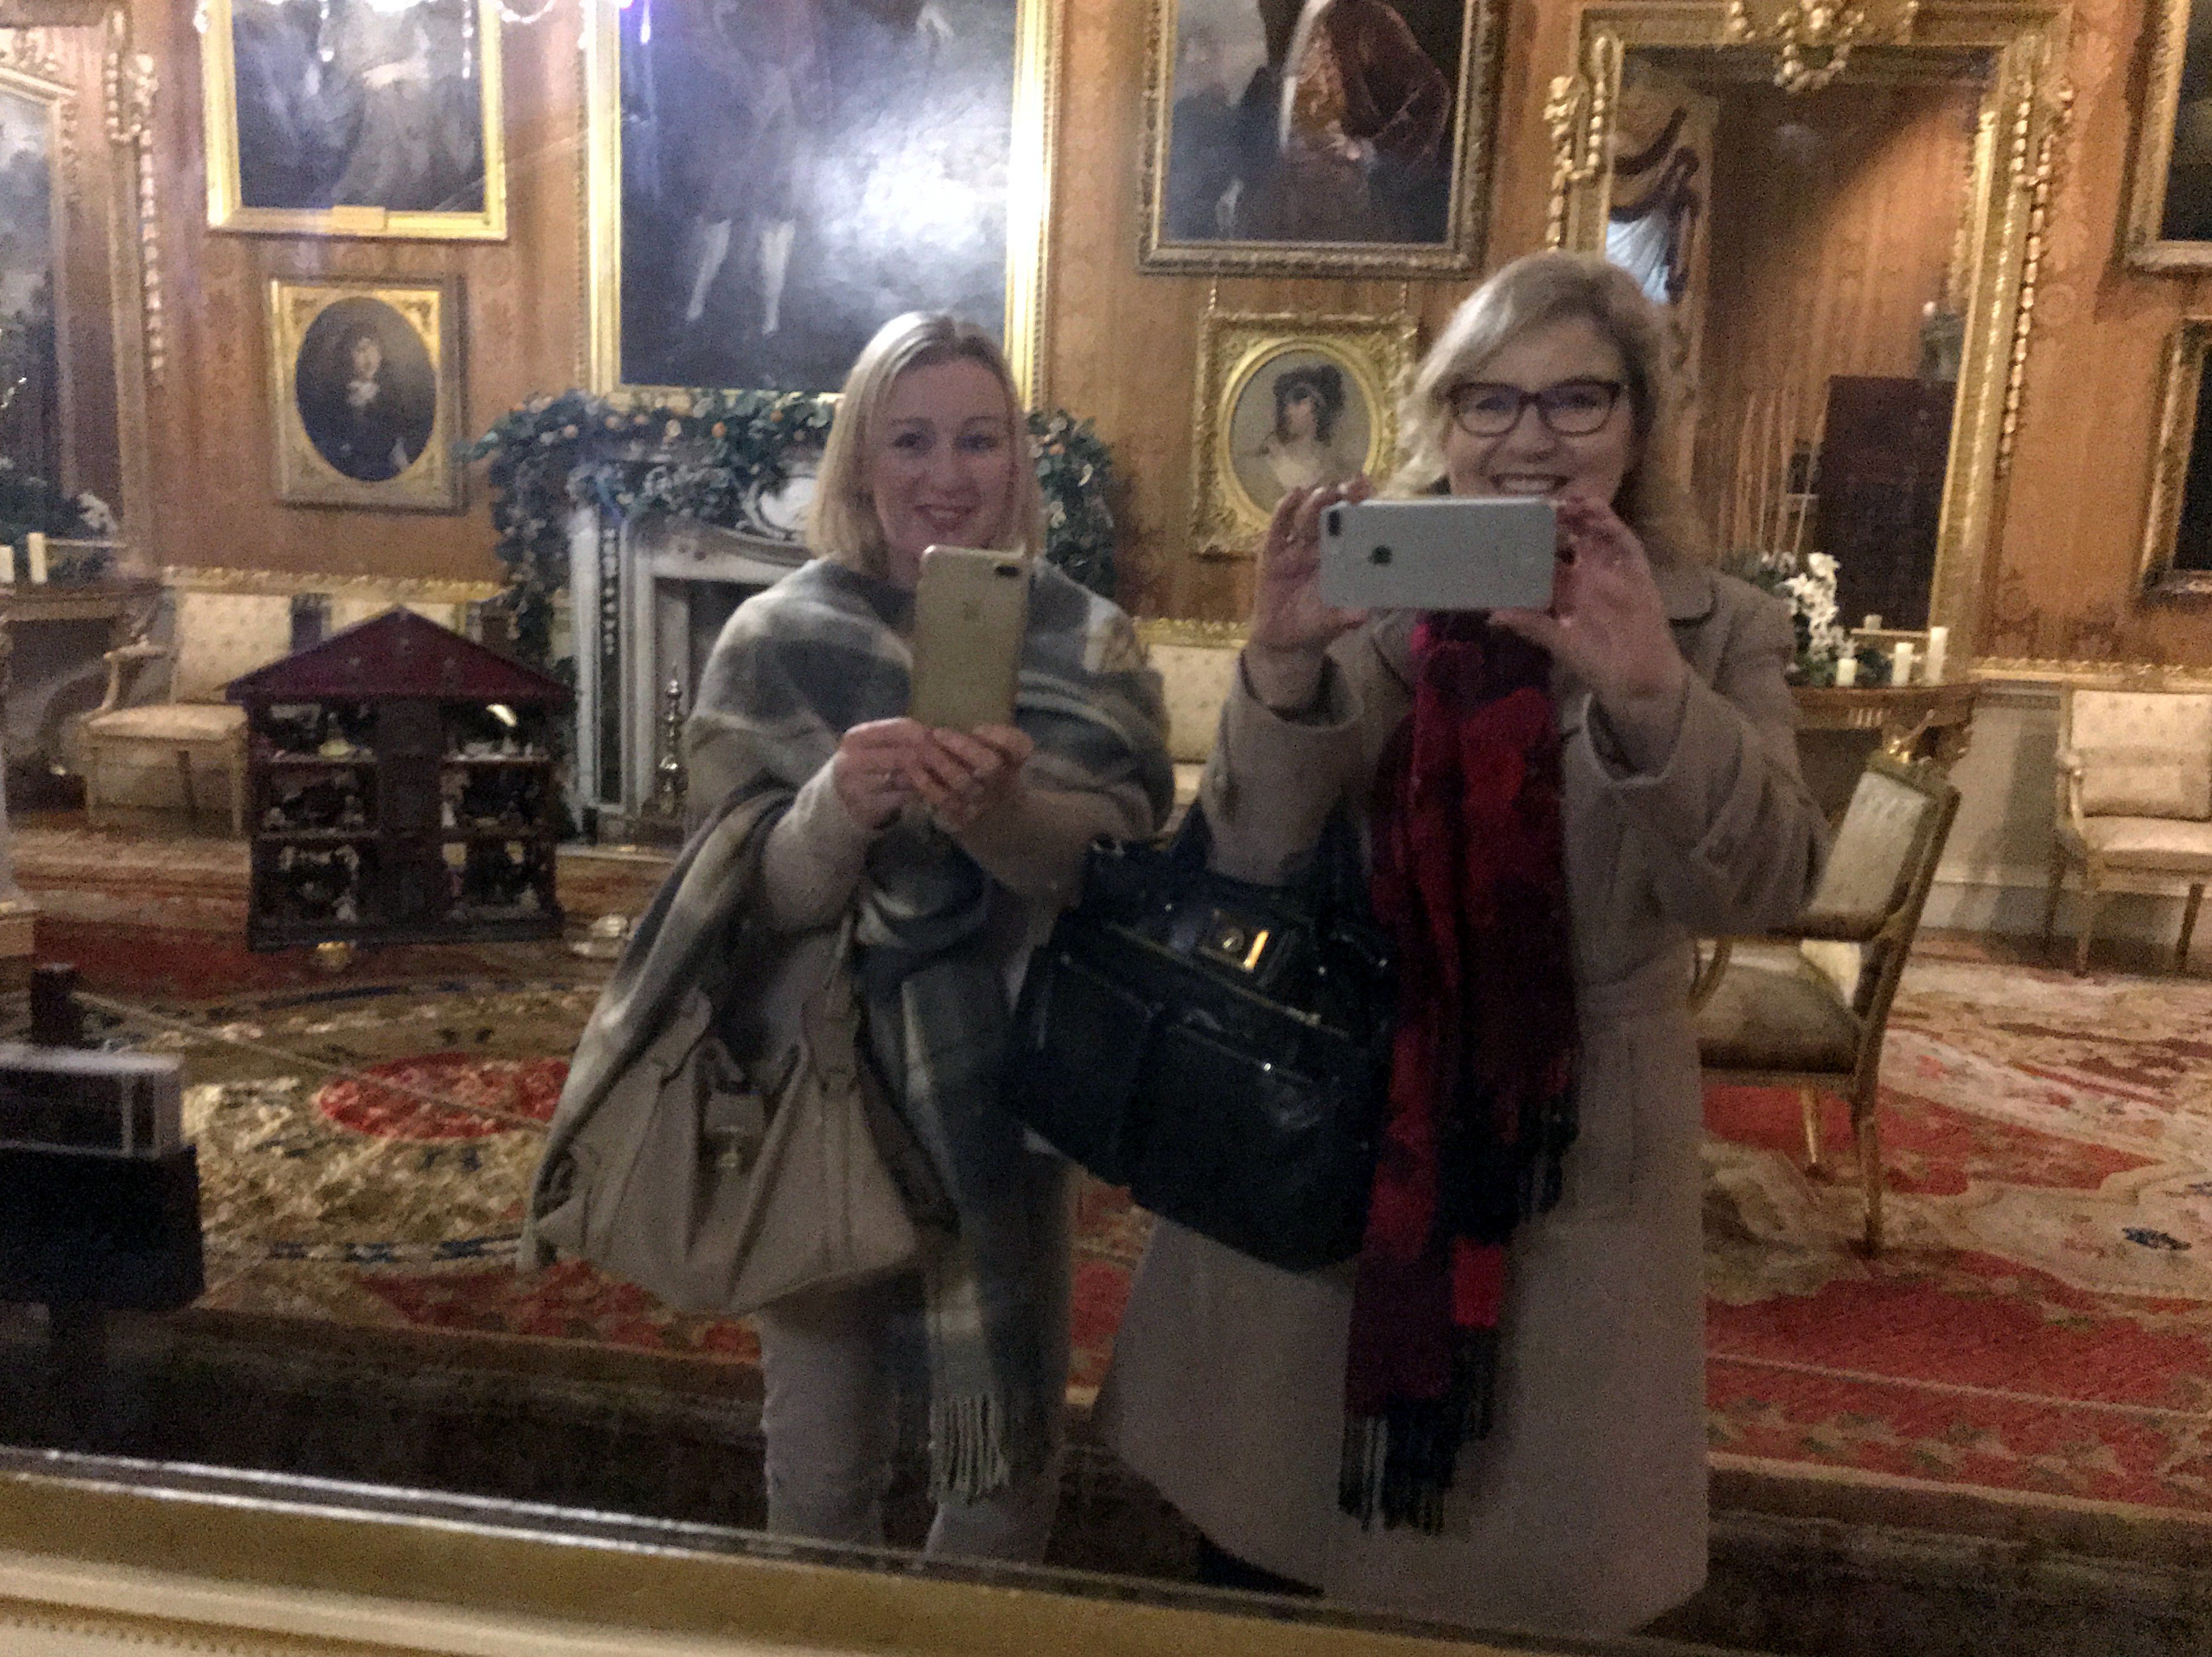 Victoria and me at Harewood